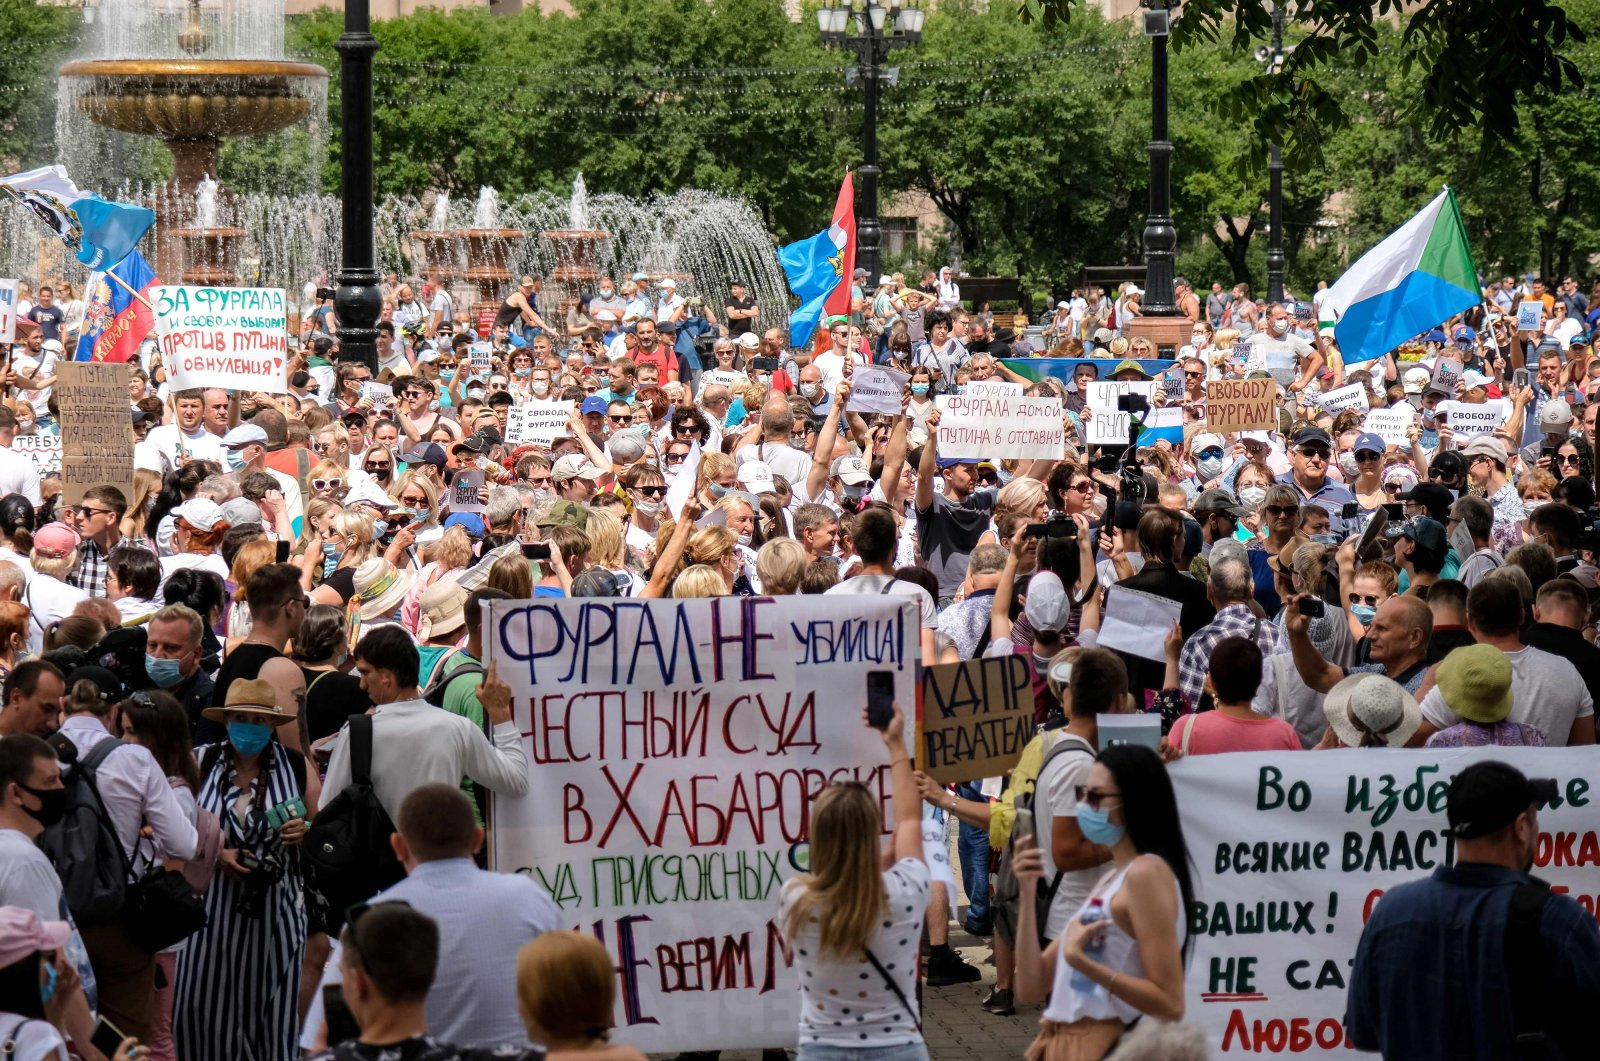 People hold banners and signs during a rally in support of Sergei Furgal, the governor of the Khabarovsk region who was arrested, in Khabarovsk, Russia, July 25, 2020. (AFP Photo)